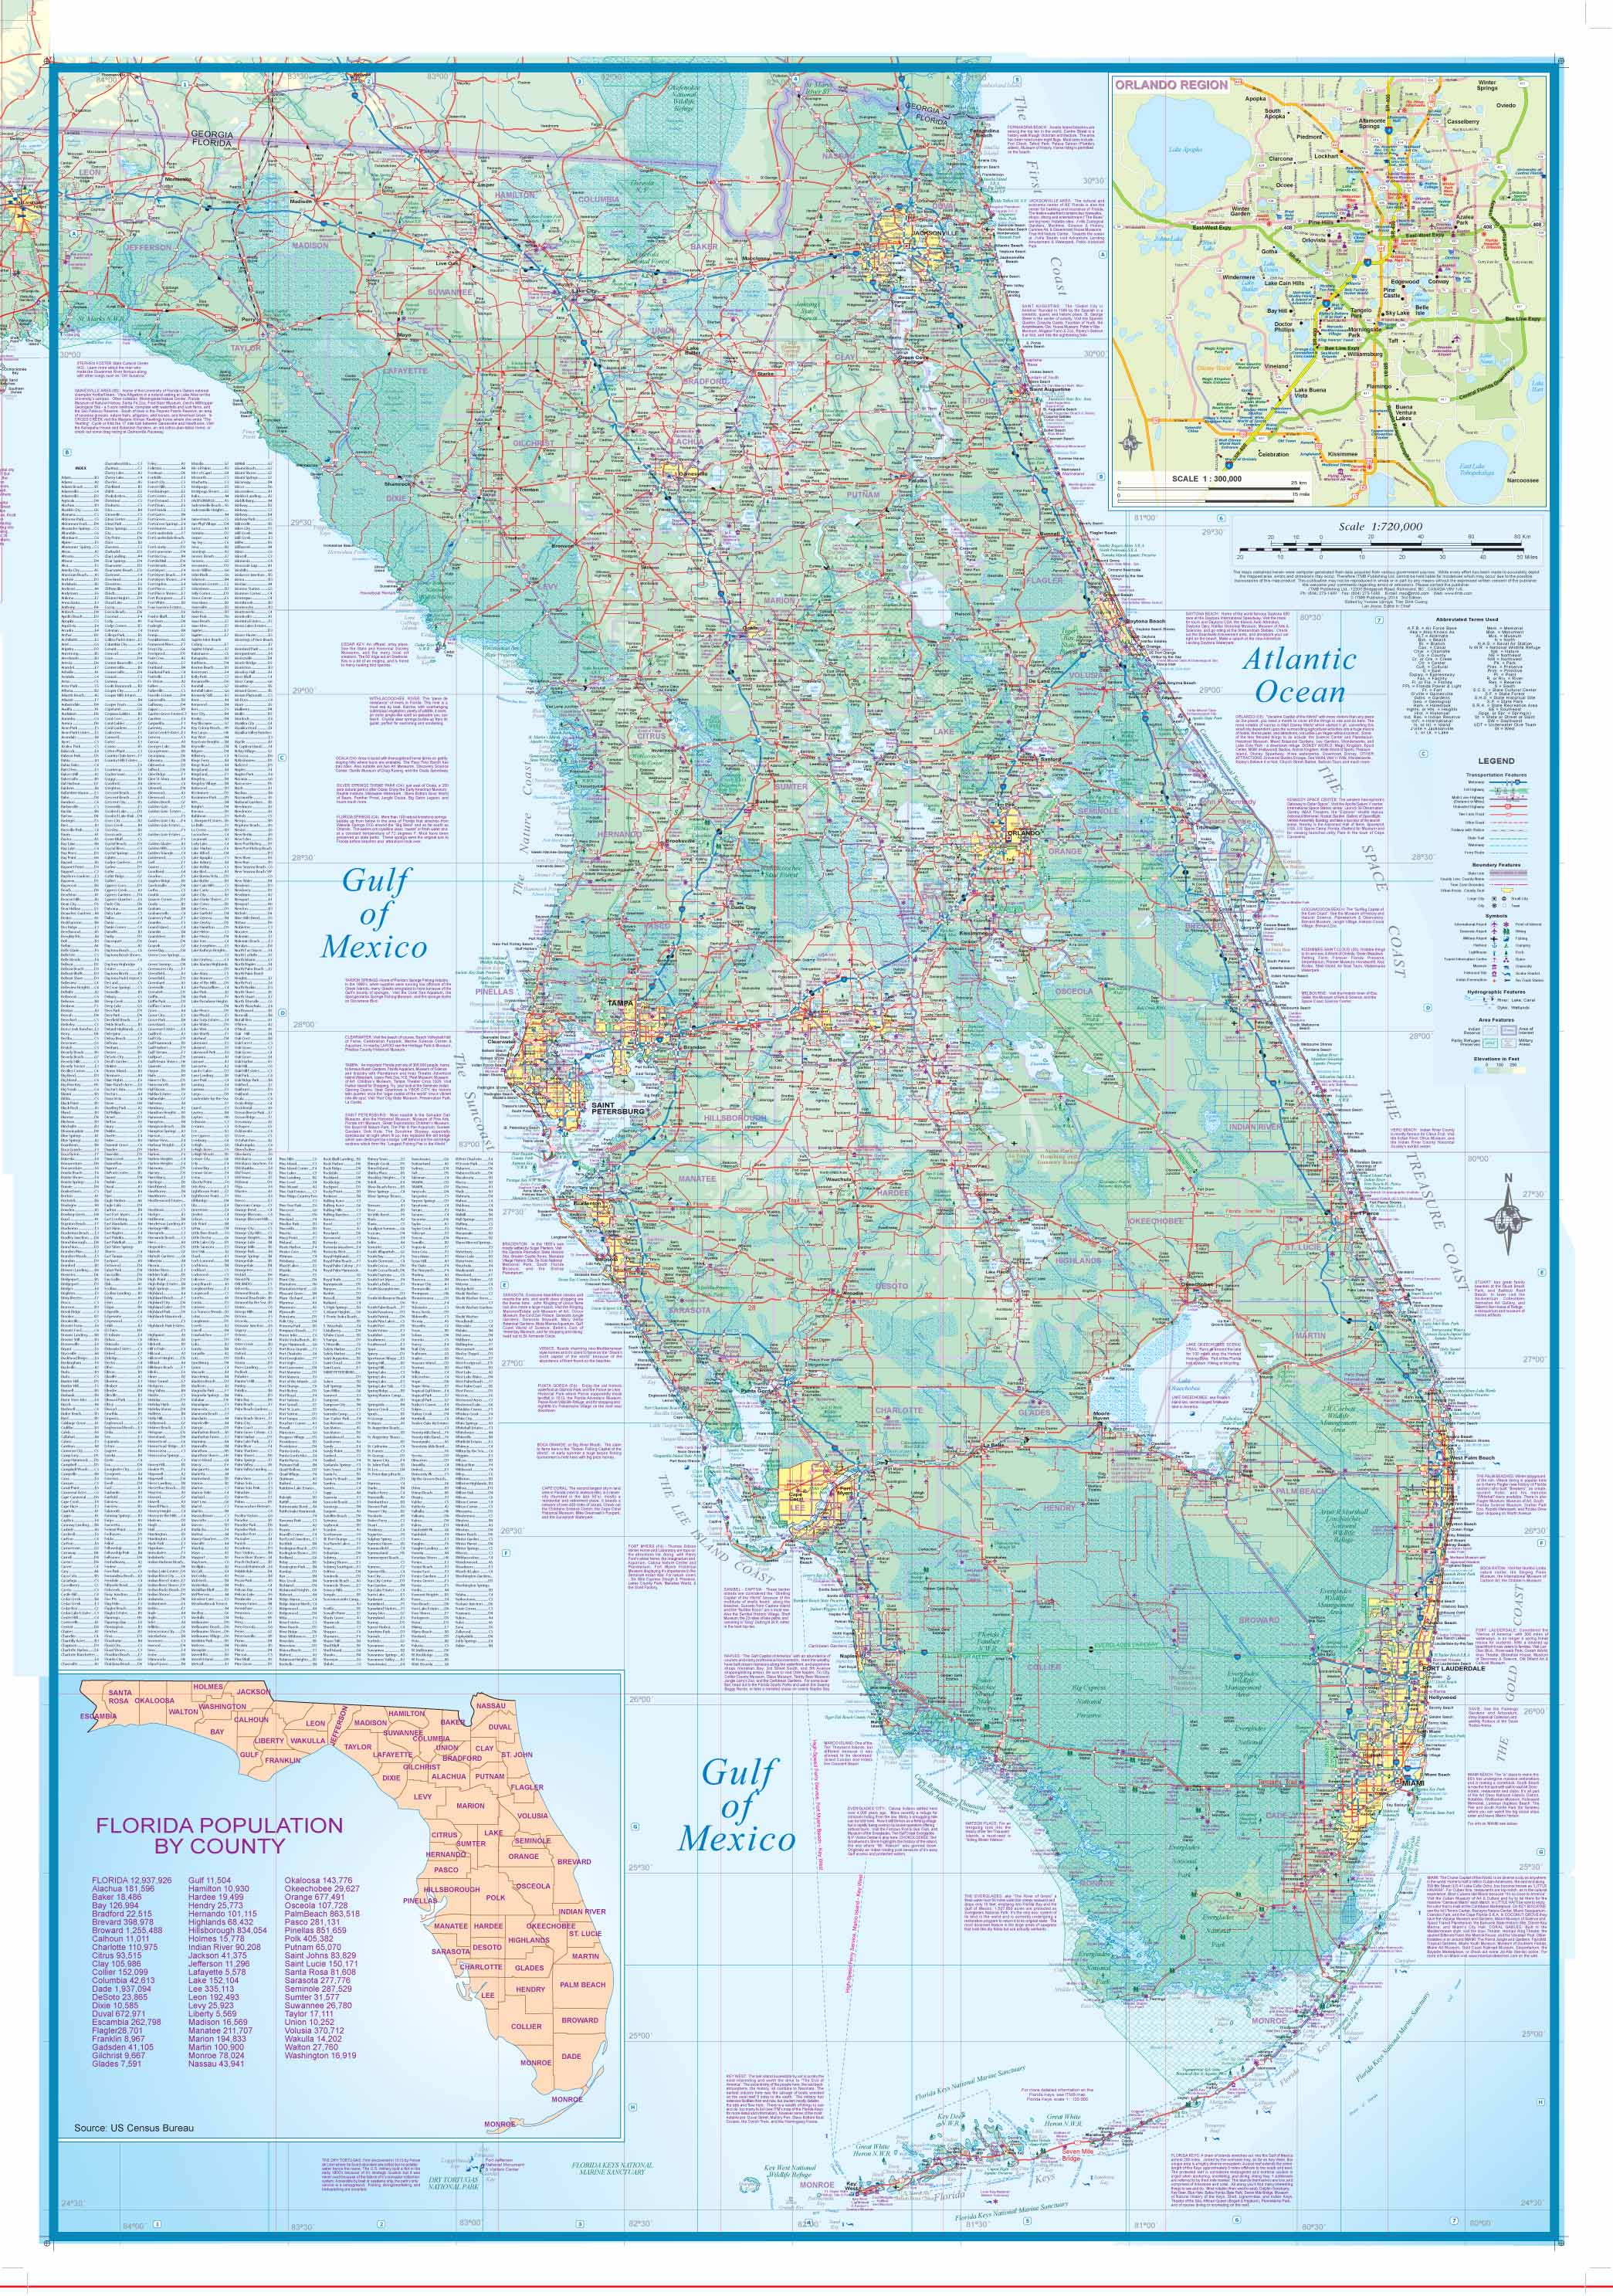 Maps for travel City Maps Road Maps Guides Globes Topographic – Florida Travel Map